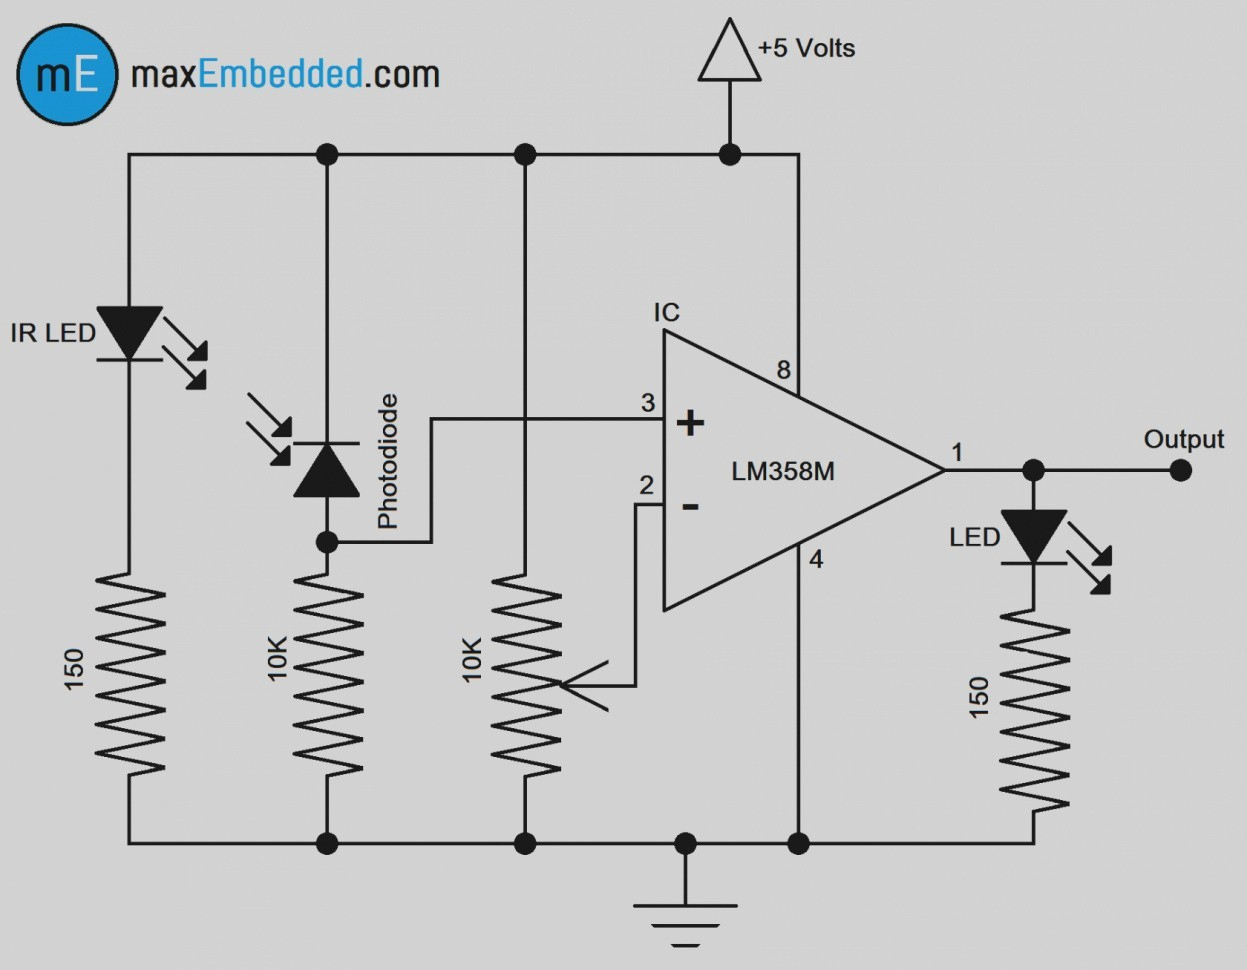 Nema L14 20R Wiring Diagram | Wiring Diagram Library - L14-30P Wiring Diagram